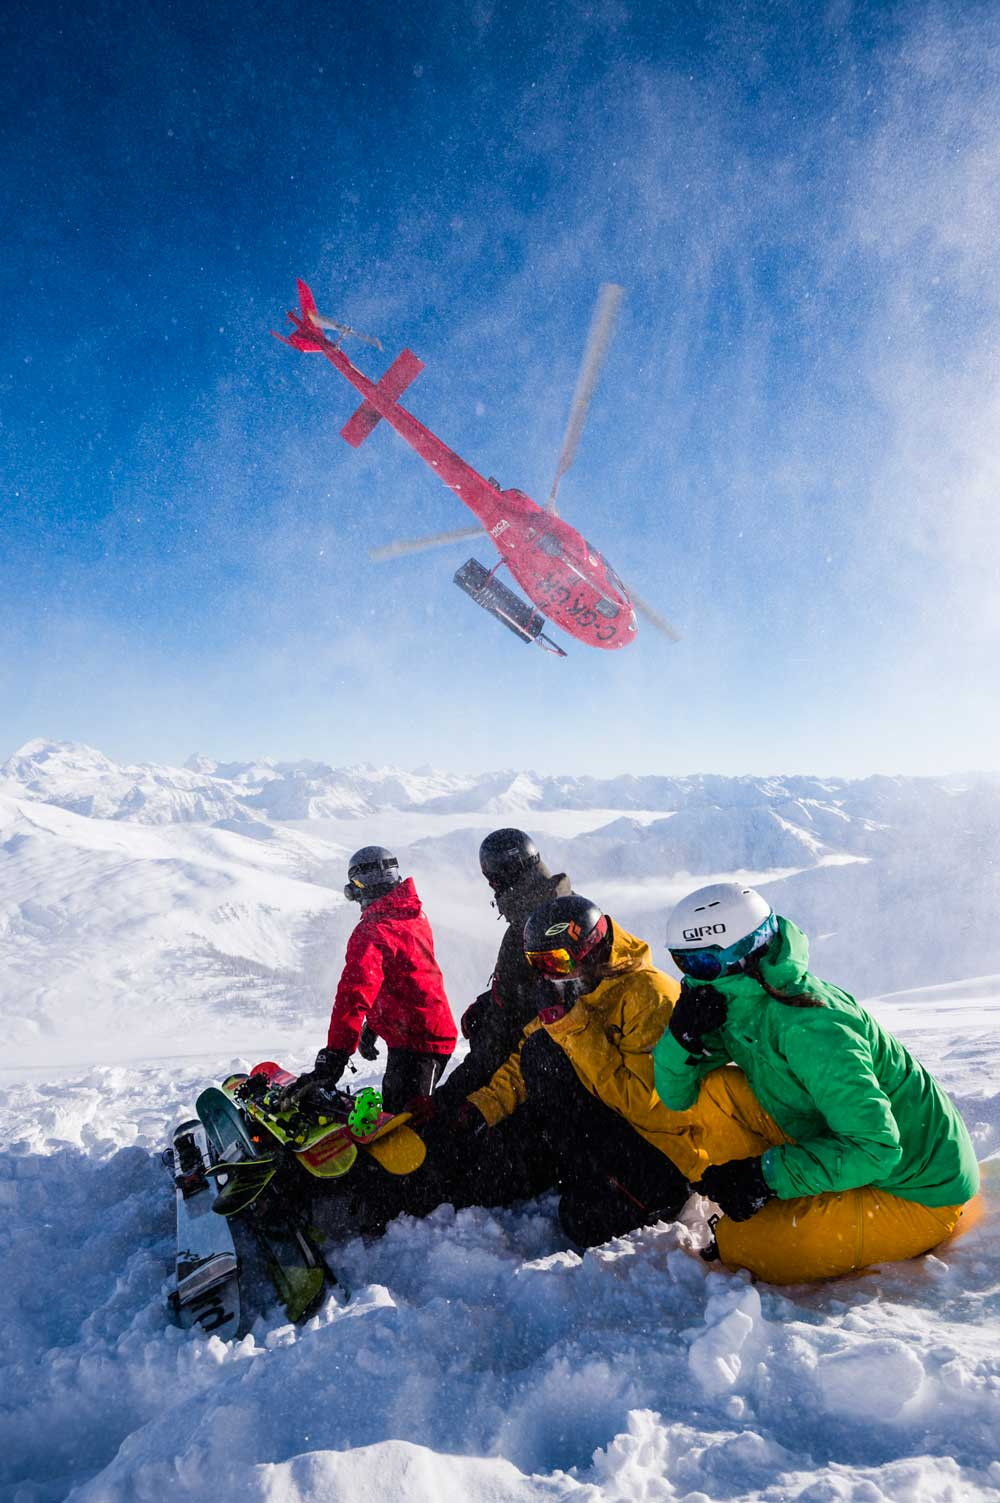 Mica Heli-skiing is world-famous for its heli-accessed pillow lines. Credit: Mattias Fredriksson.